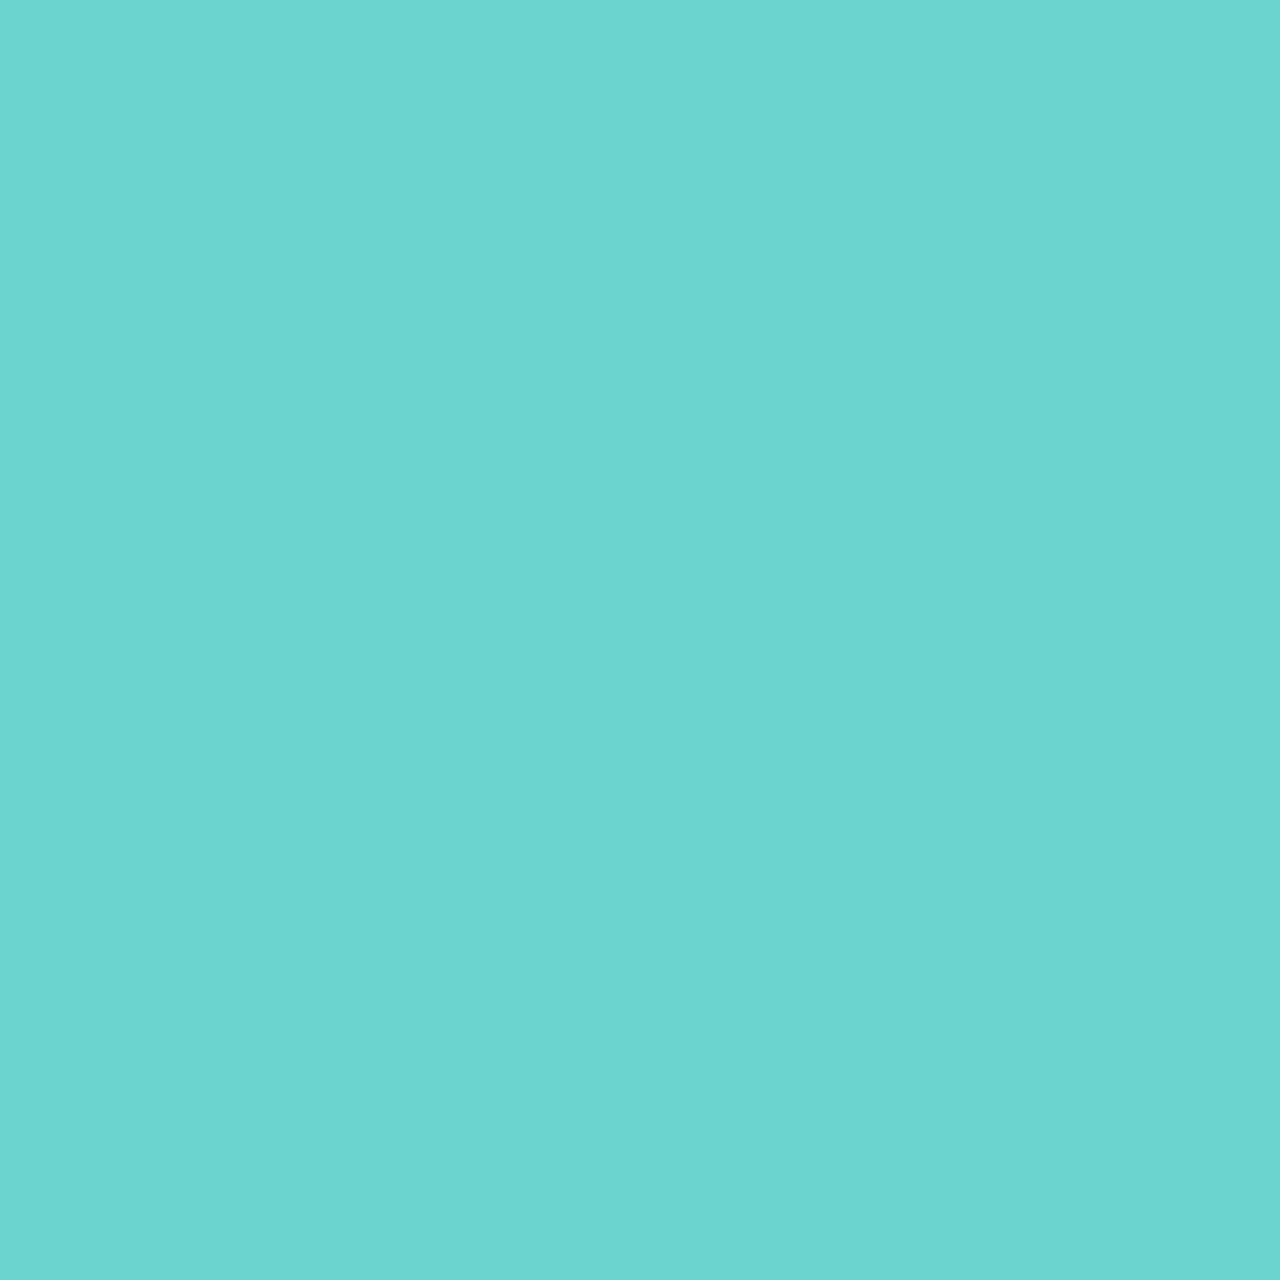 #4360 Rosco Gels Roscolux CalColor 60 Cyan, 20x24""